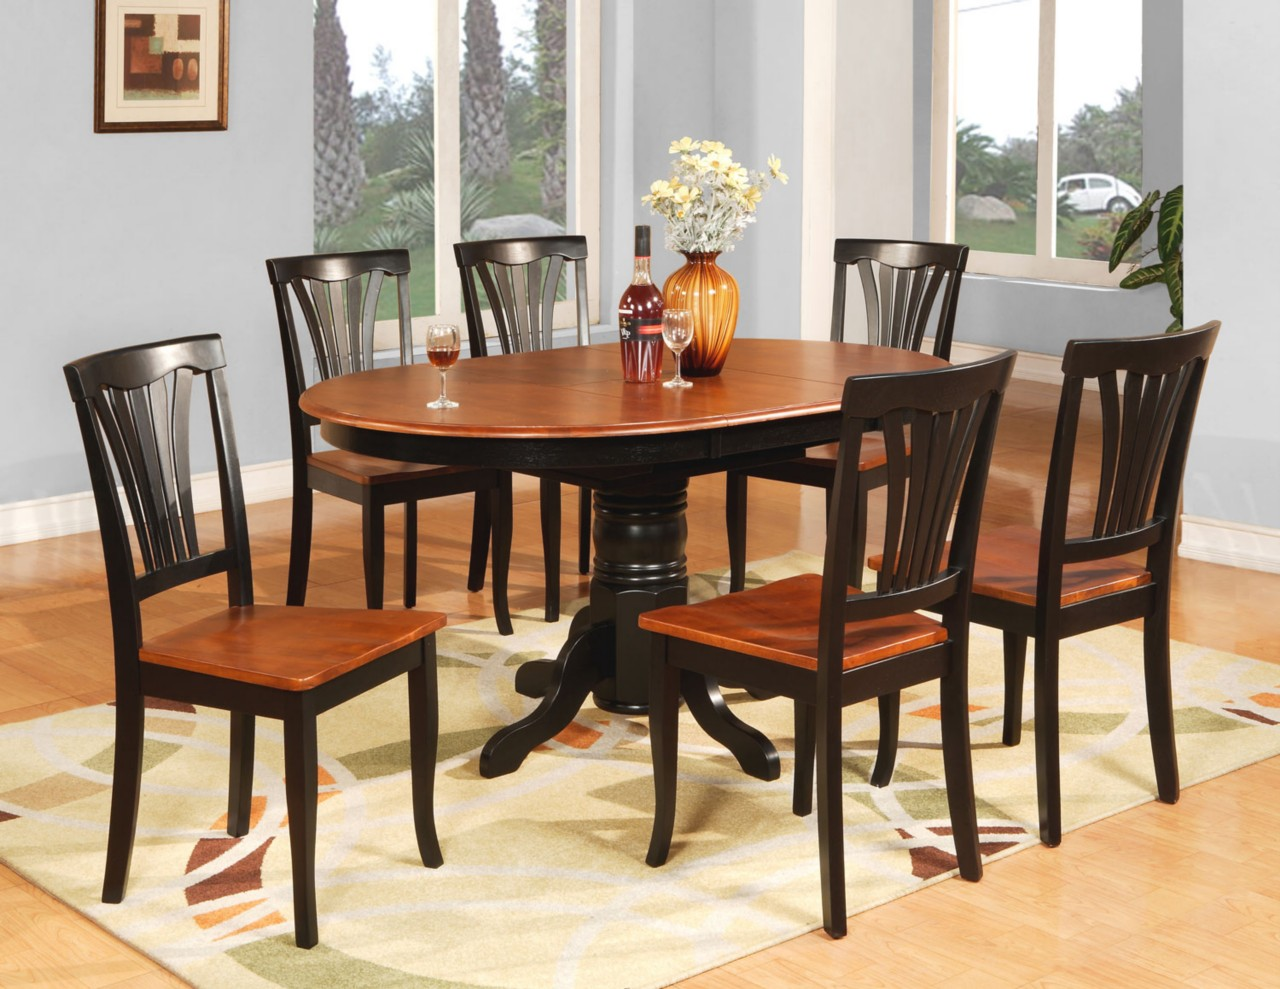 7 pc oval dinette kitchen dining room table 6 chairs ebay Kitchen table and chairs